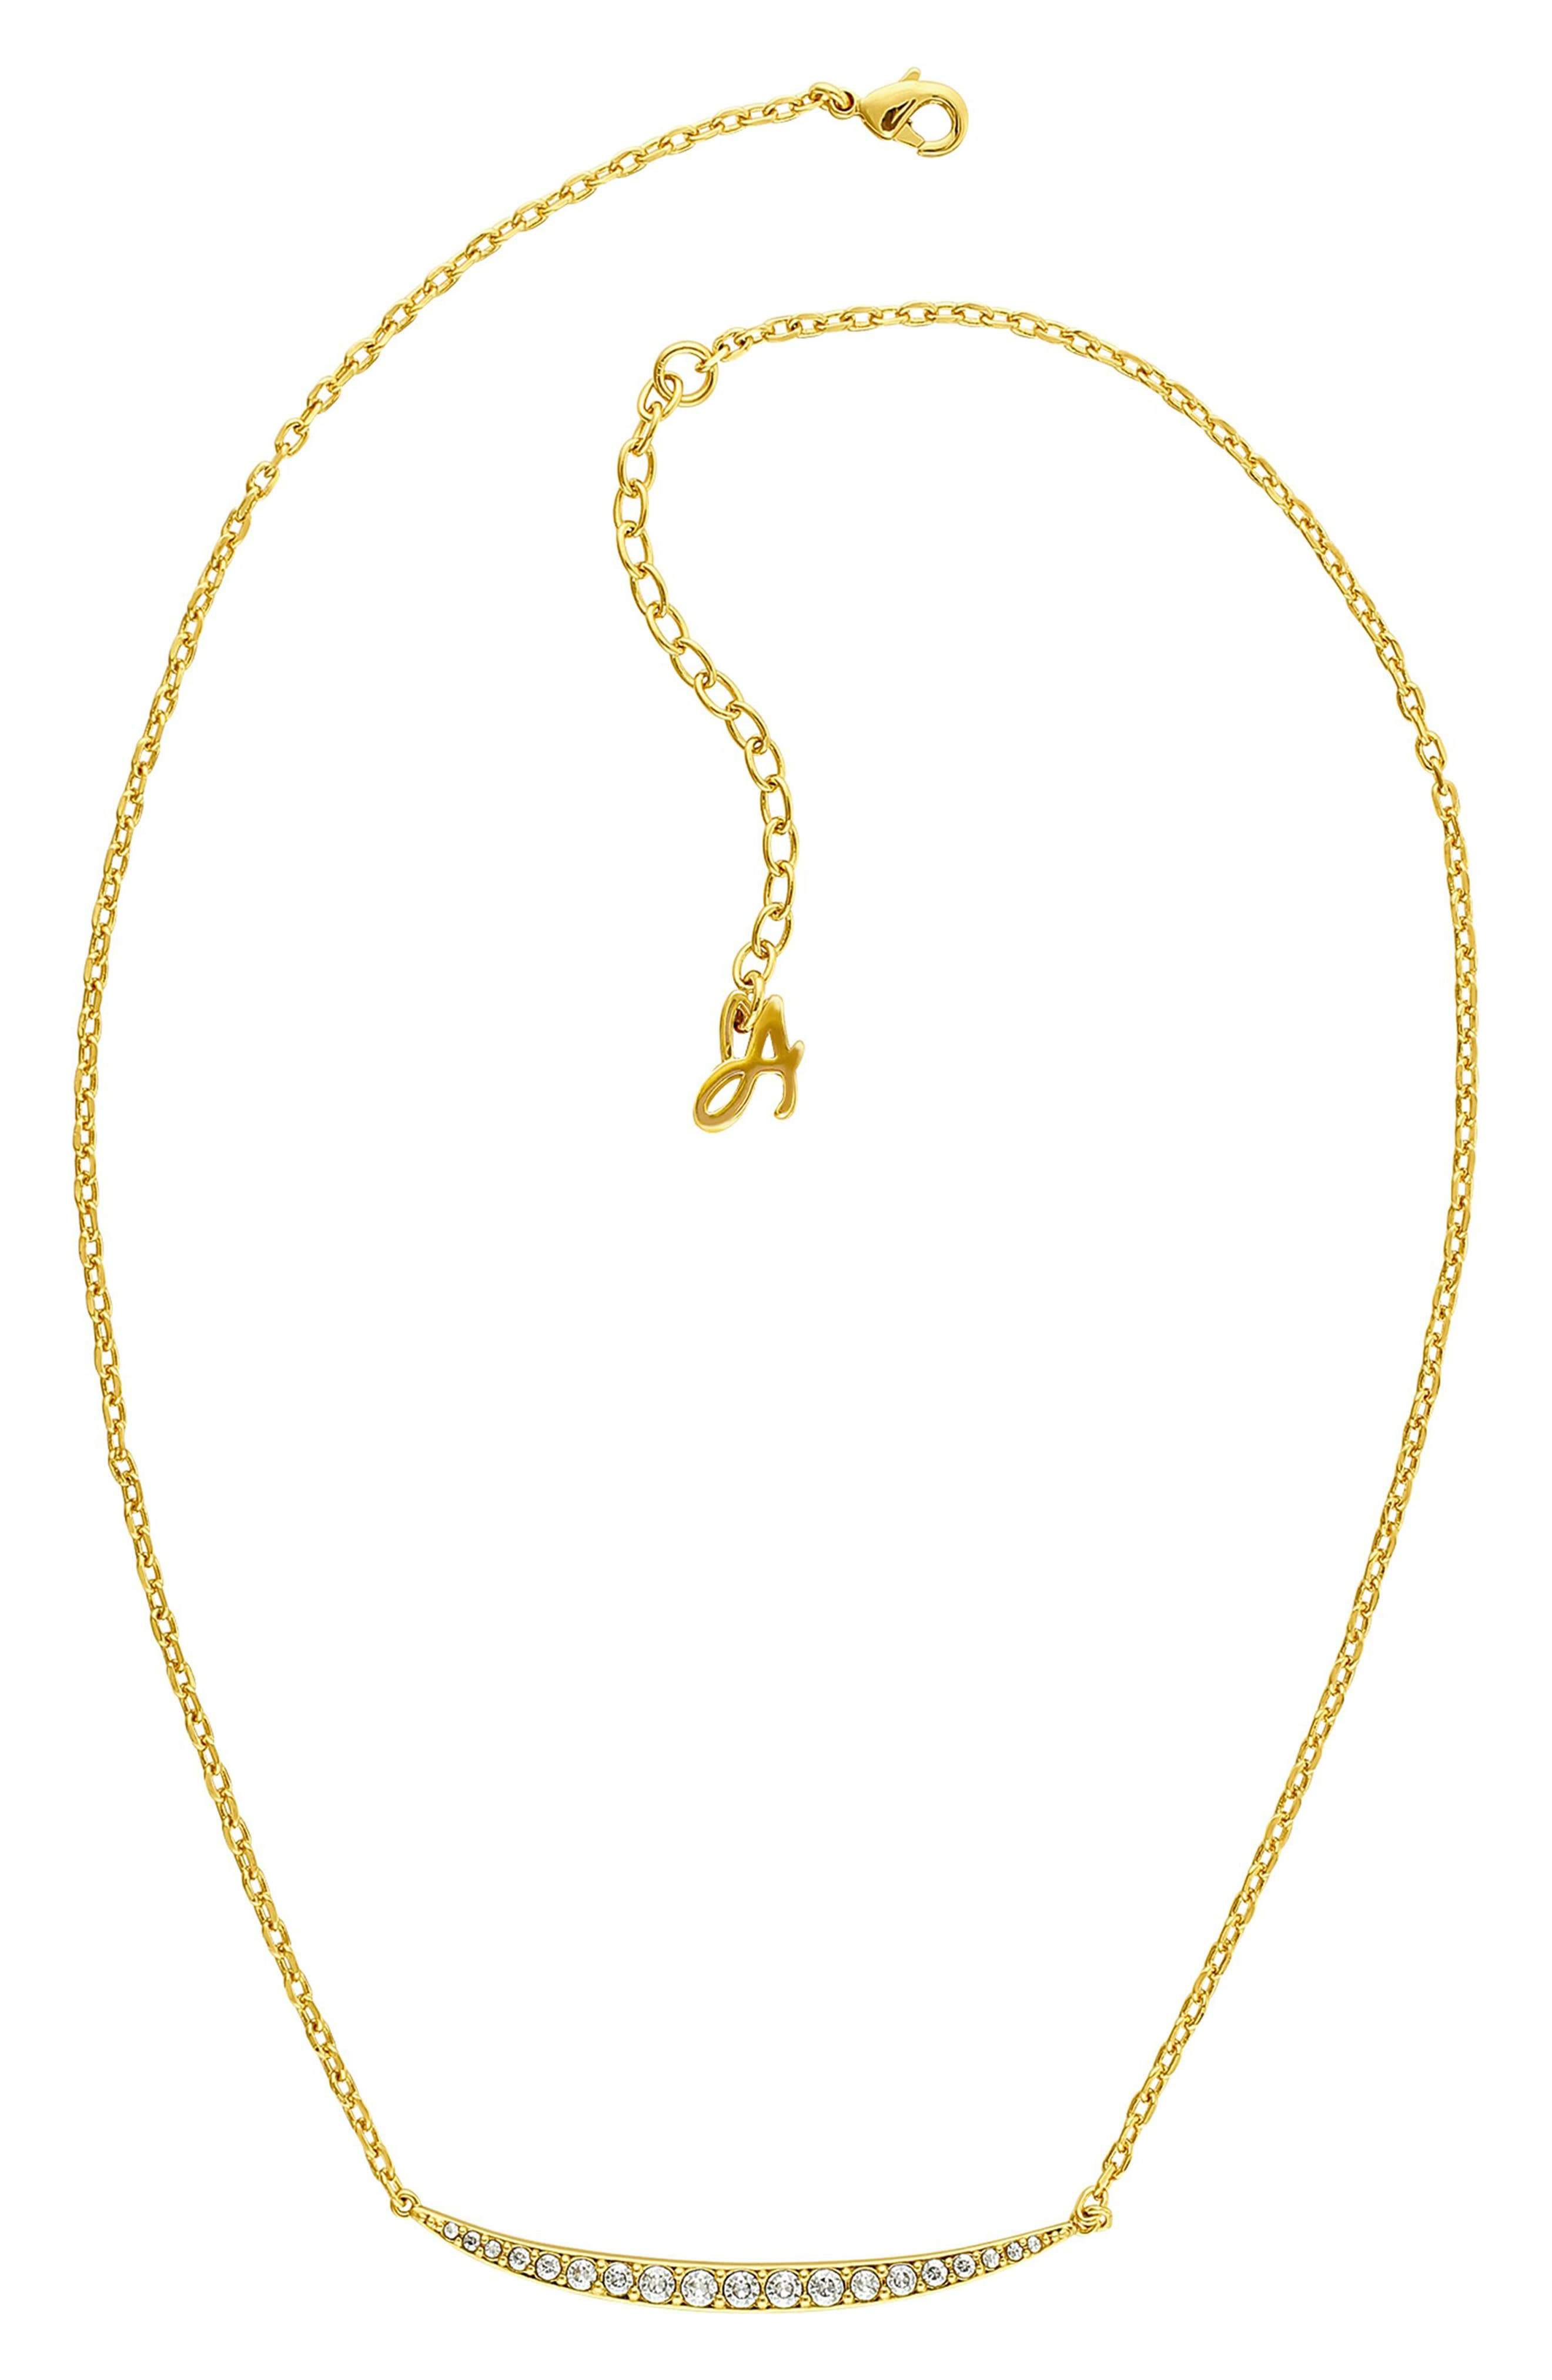 ADORE Curved Crystal Bar Necklace in Gold